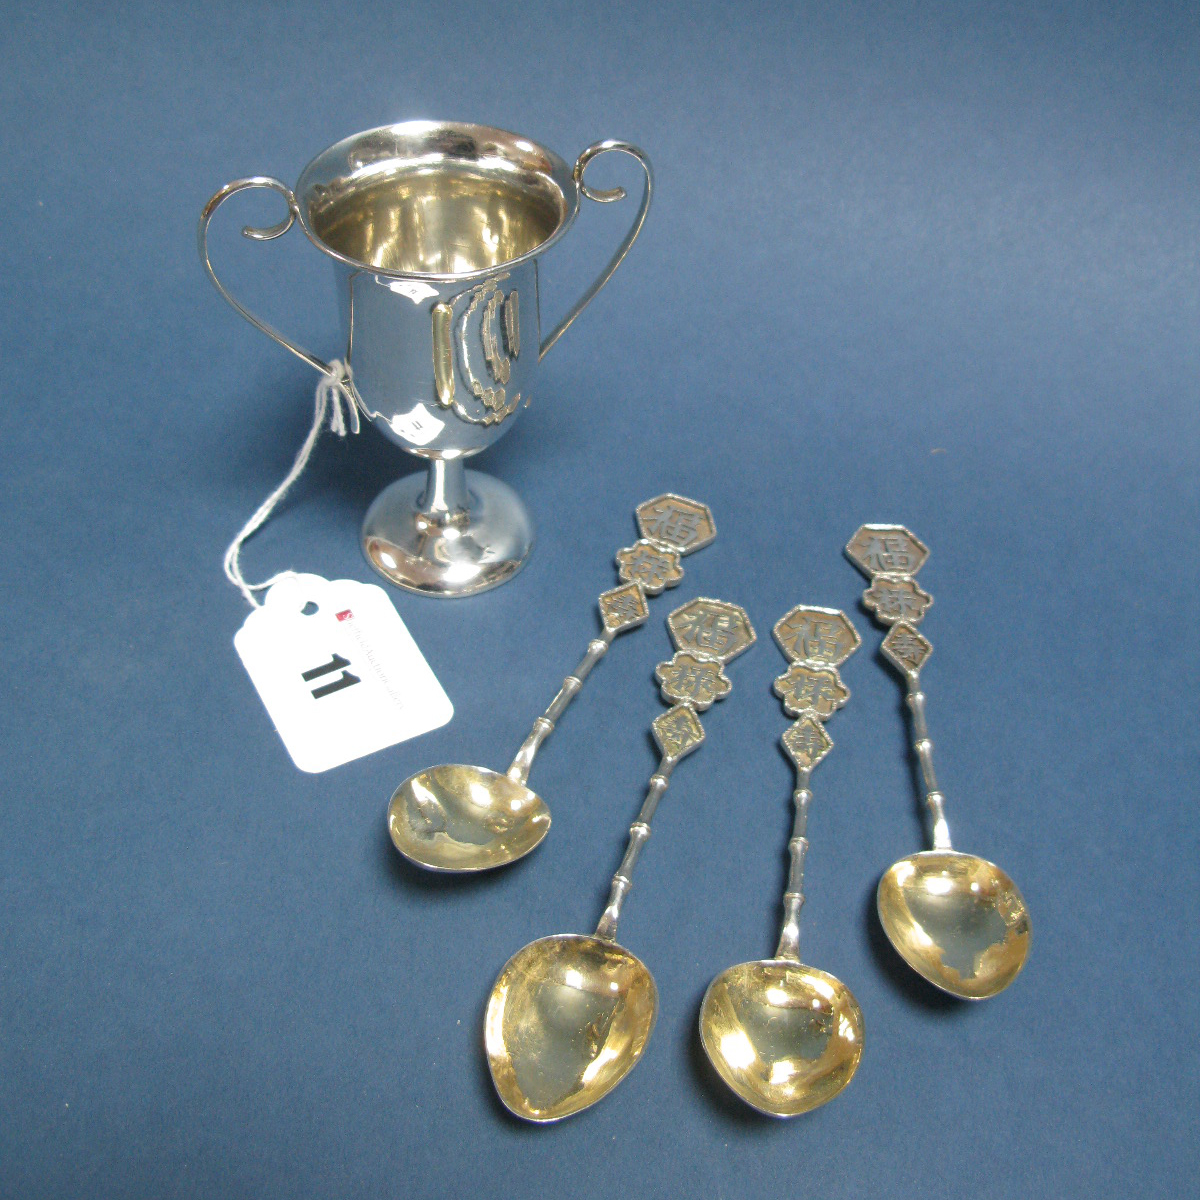 Lot 11 - A Set of Four Chinese Teaspoons, each with character marks to bamboo style handles, stamped marks